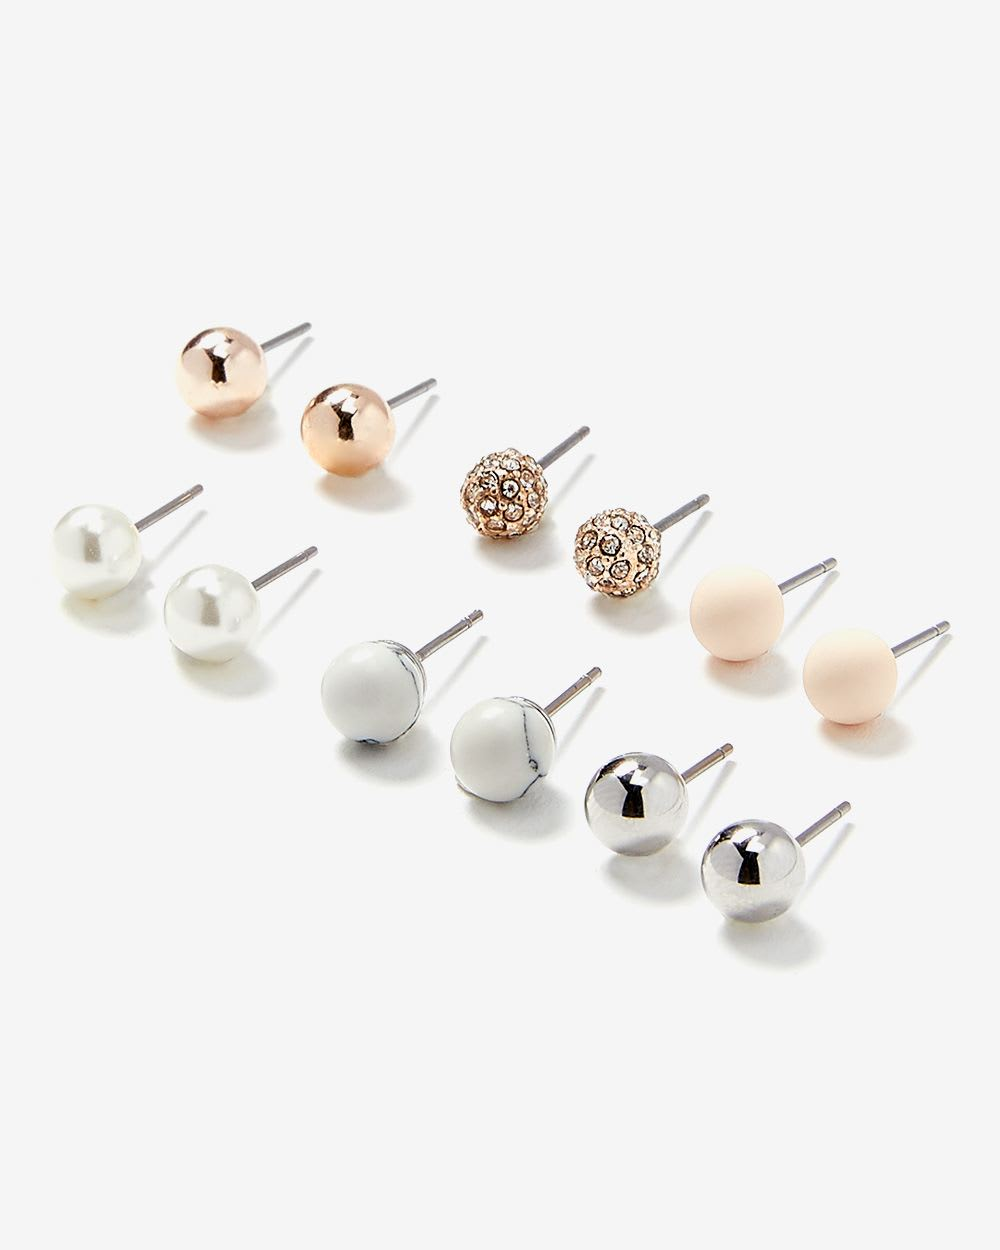 6-Pair Set of Stud Earrings